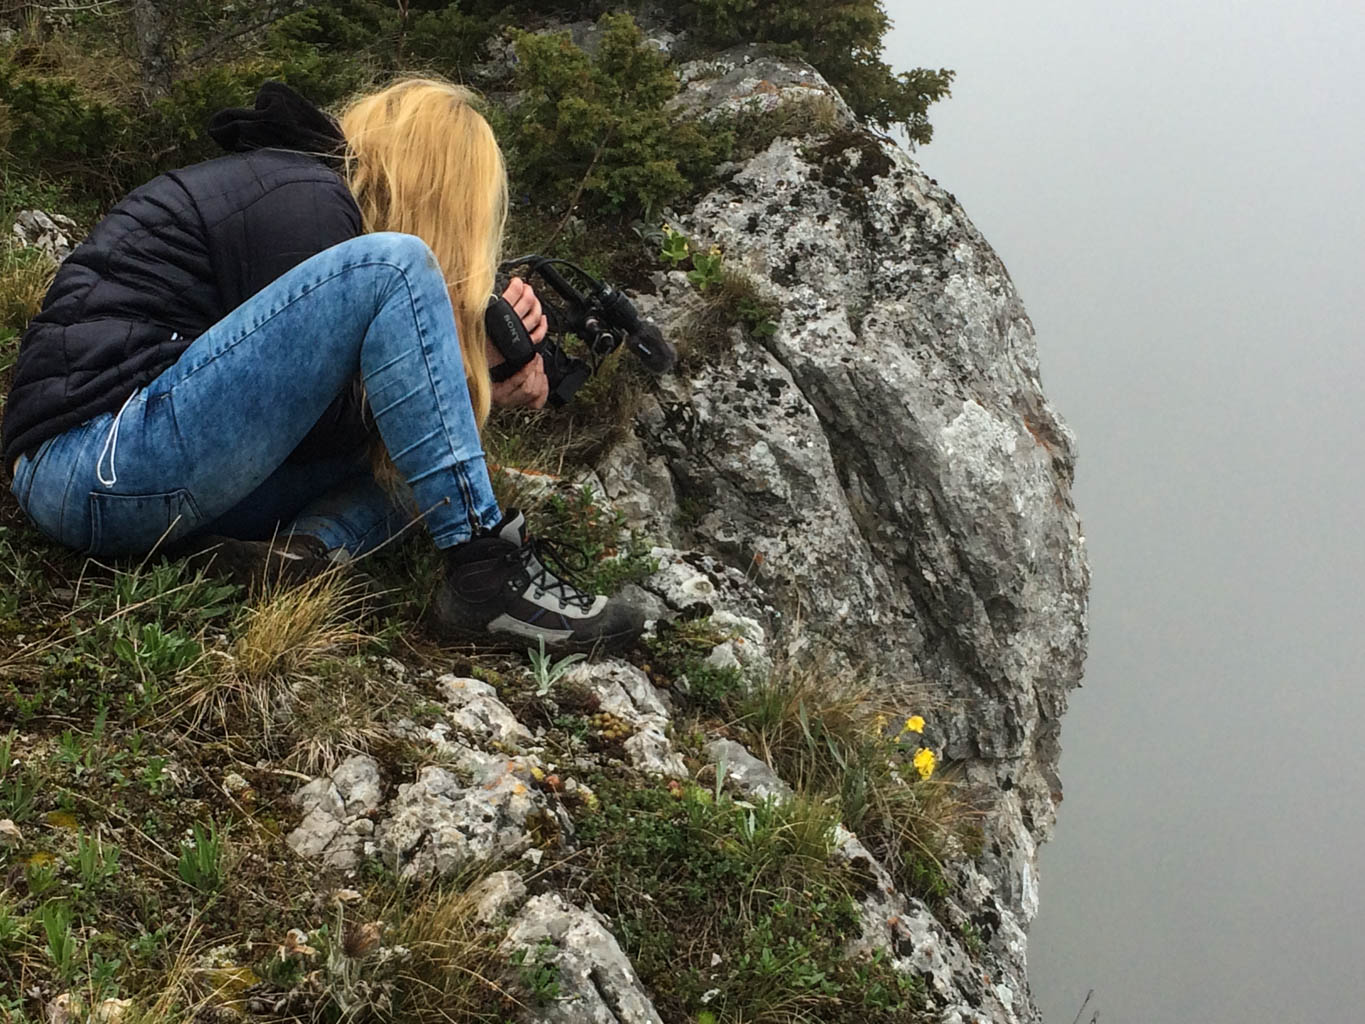 Dutch Film team in the Tatras, Slovakia © All rights reserved